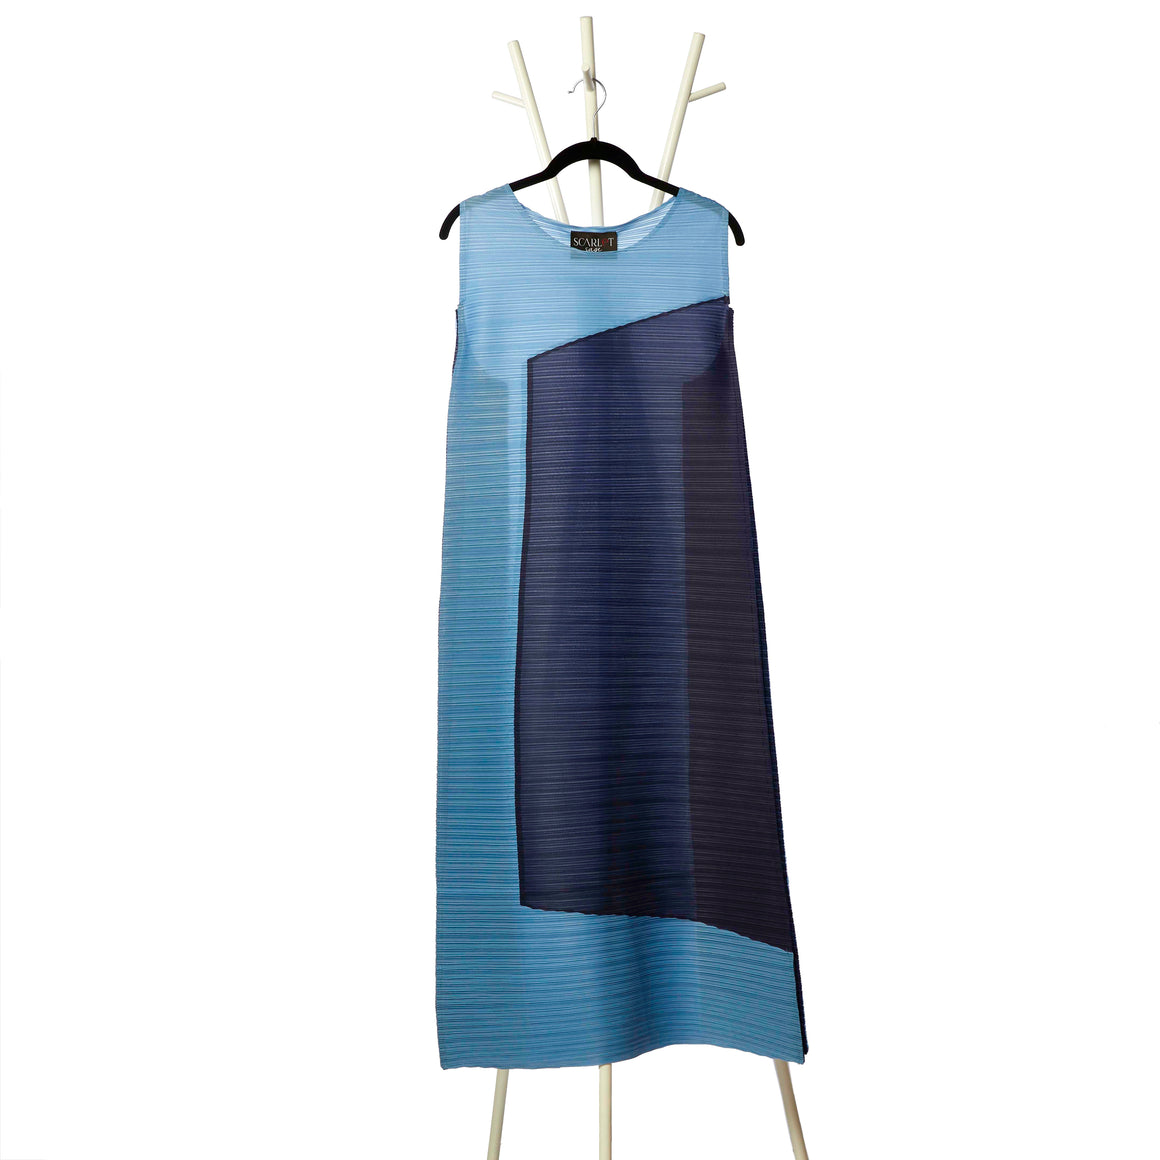 2 Tone Square Dress - Blue